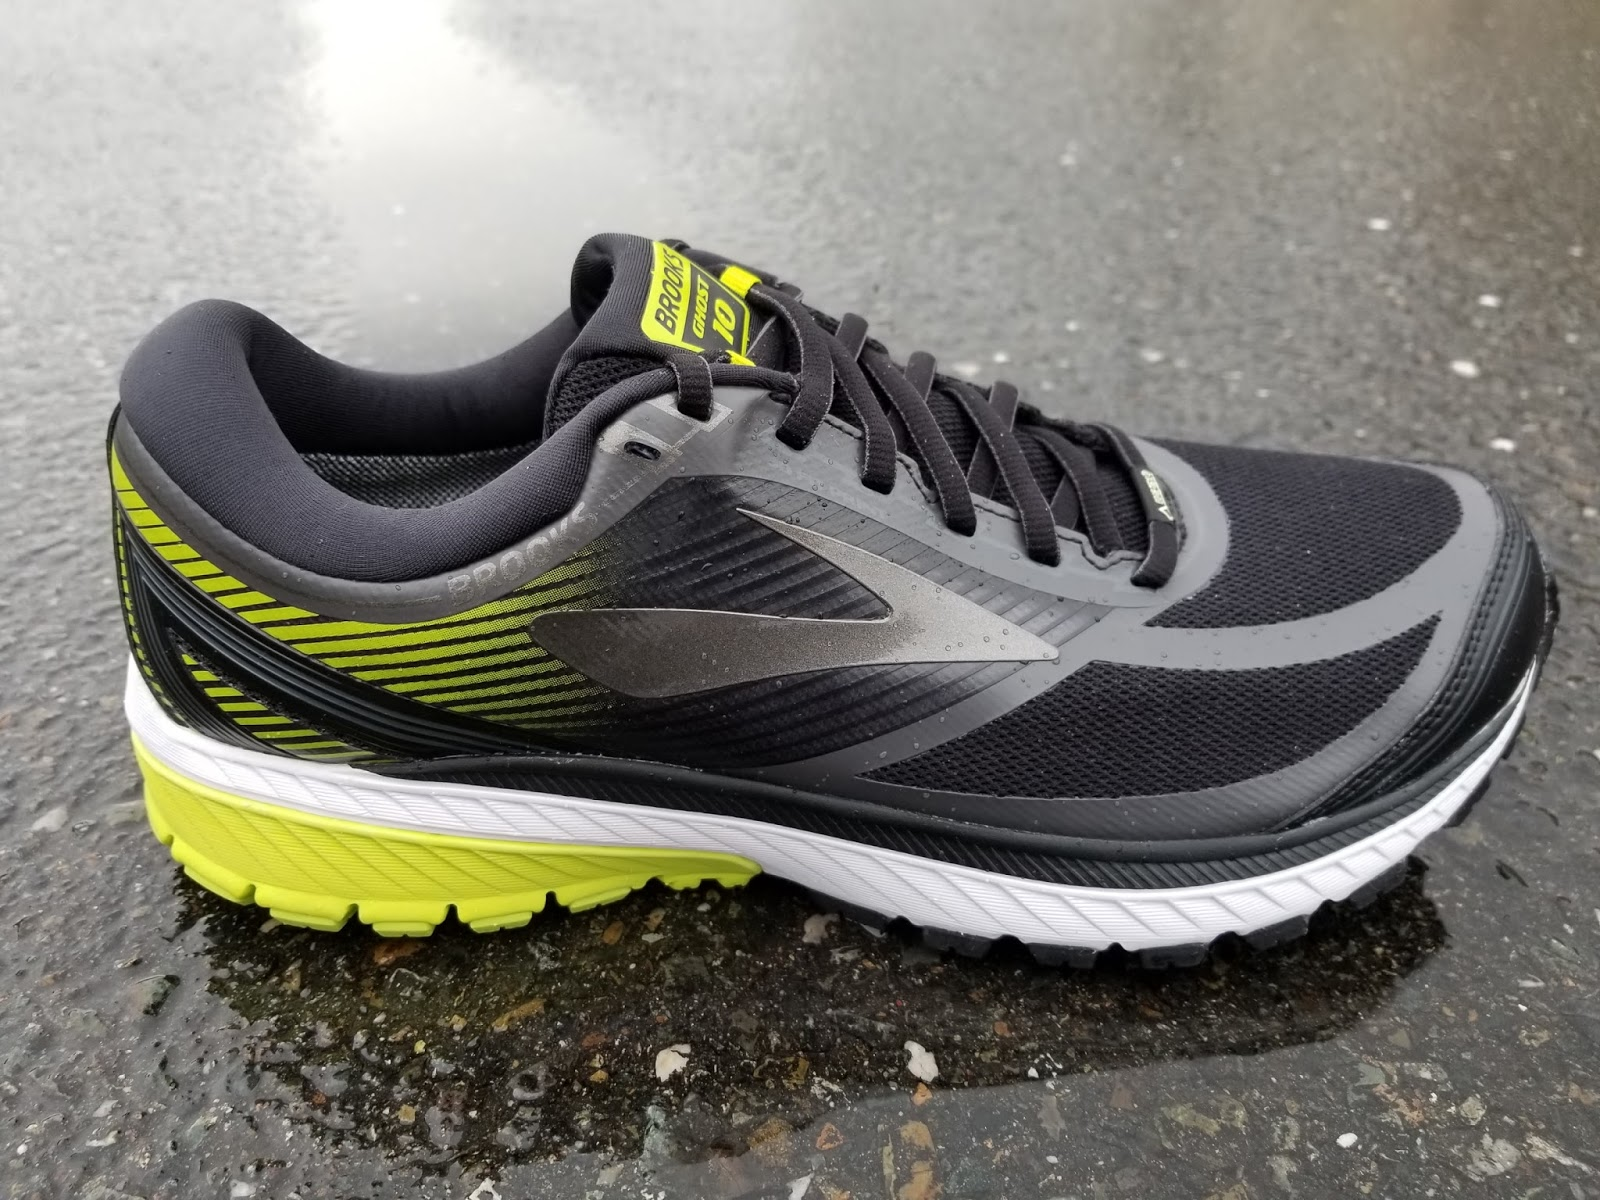 b4af1793b06 Both the Ghost 10 and Ghost 10 GTX have soft cushioning which uses Brooks  BioMoGo DNA midsole that adapts to your stride. The shoe has a new plush ...